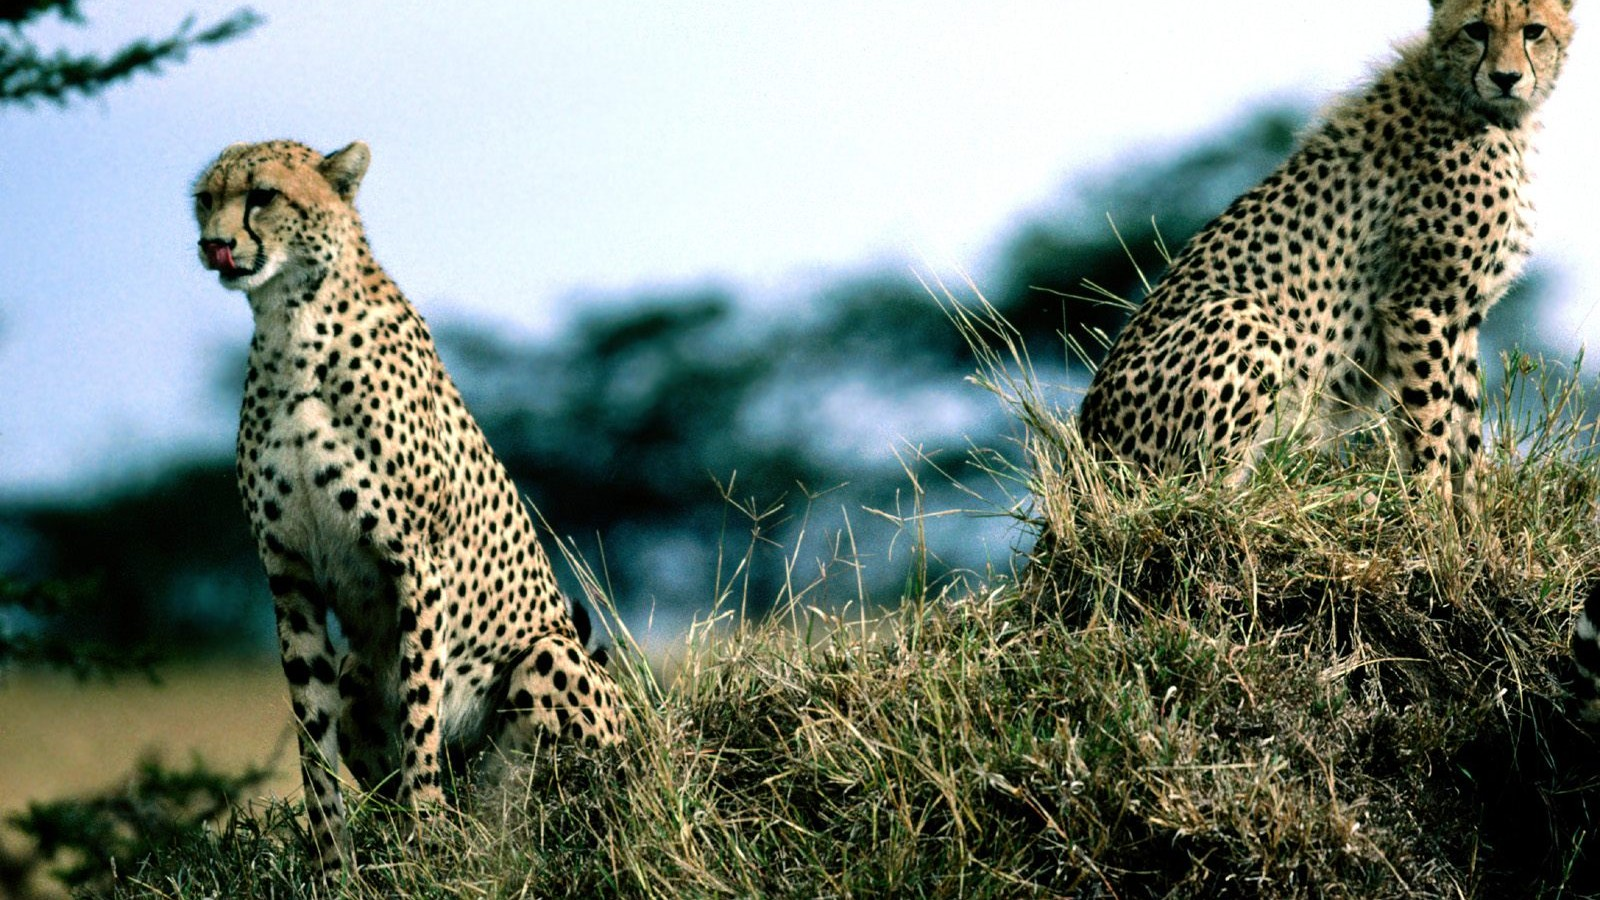 All Animals Wallpaper: Two Leopards Sitting On Hillside, The Other Animals All